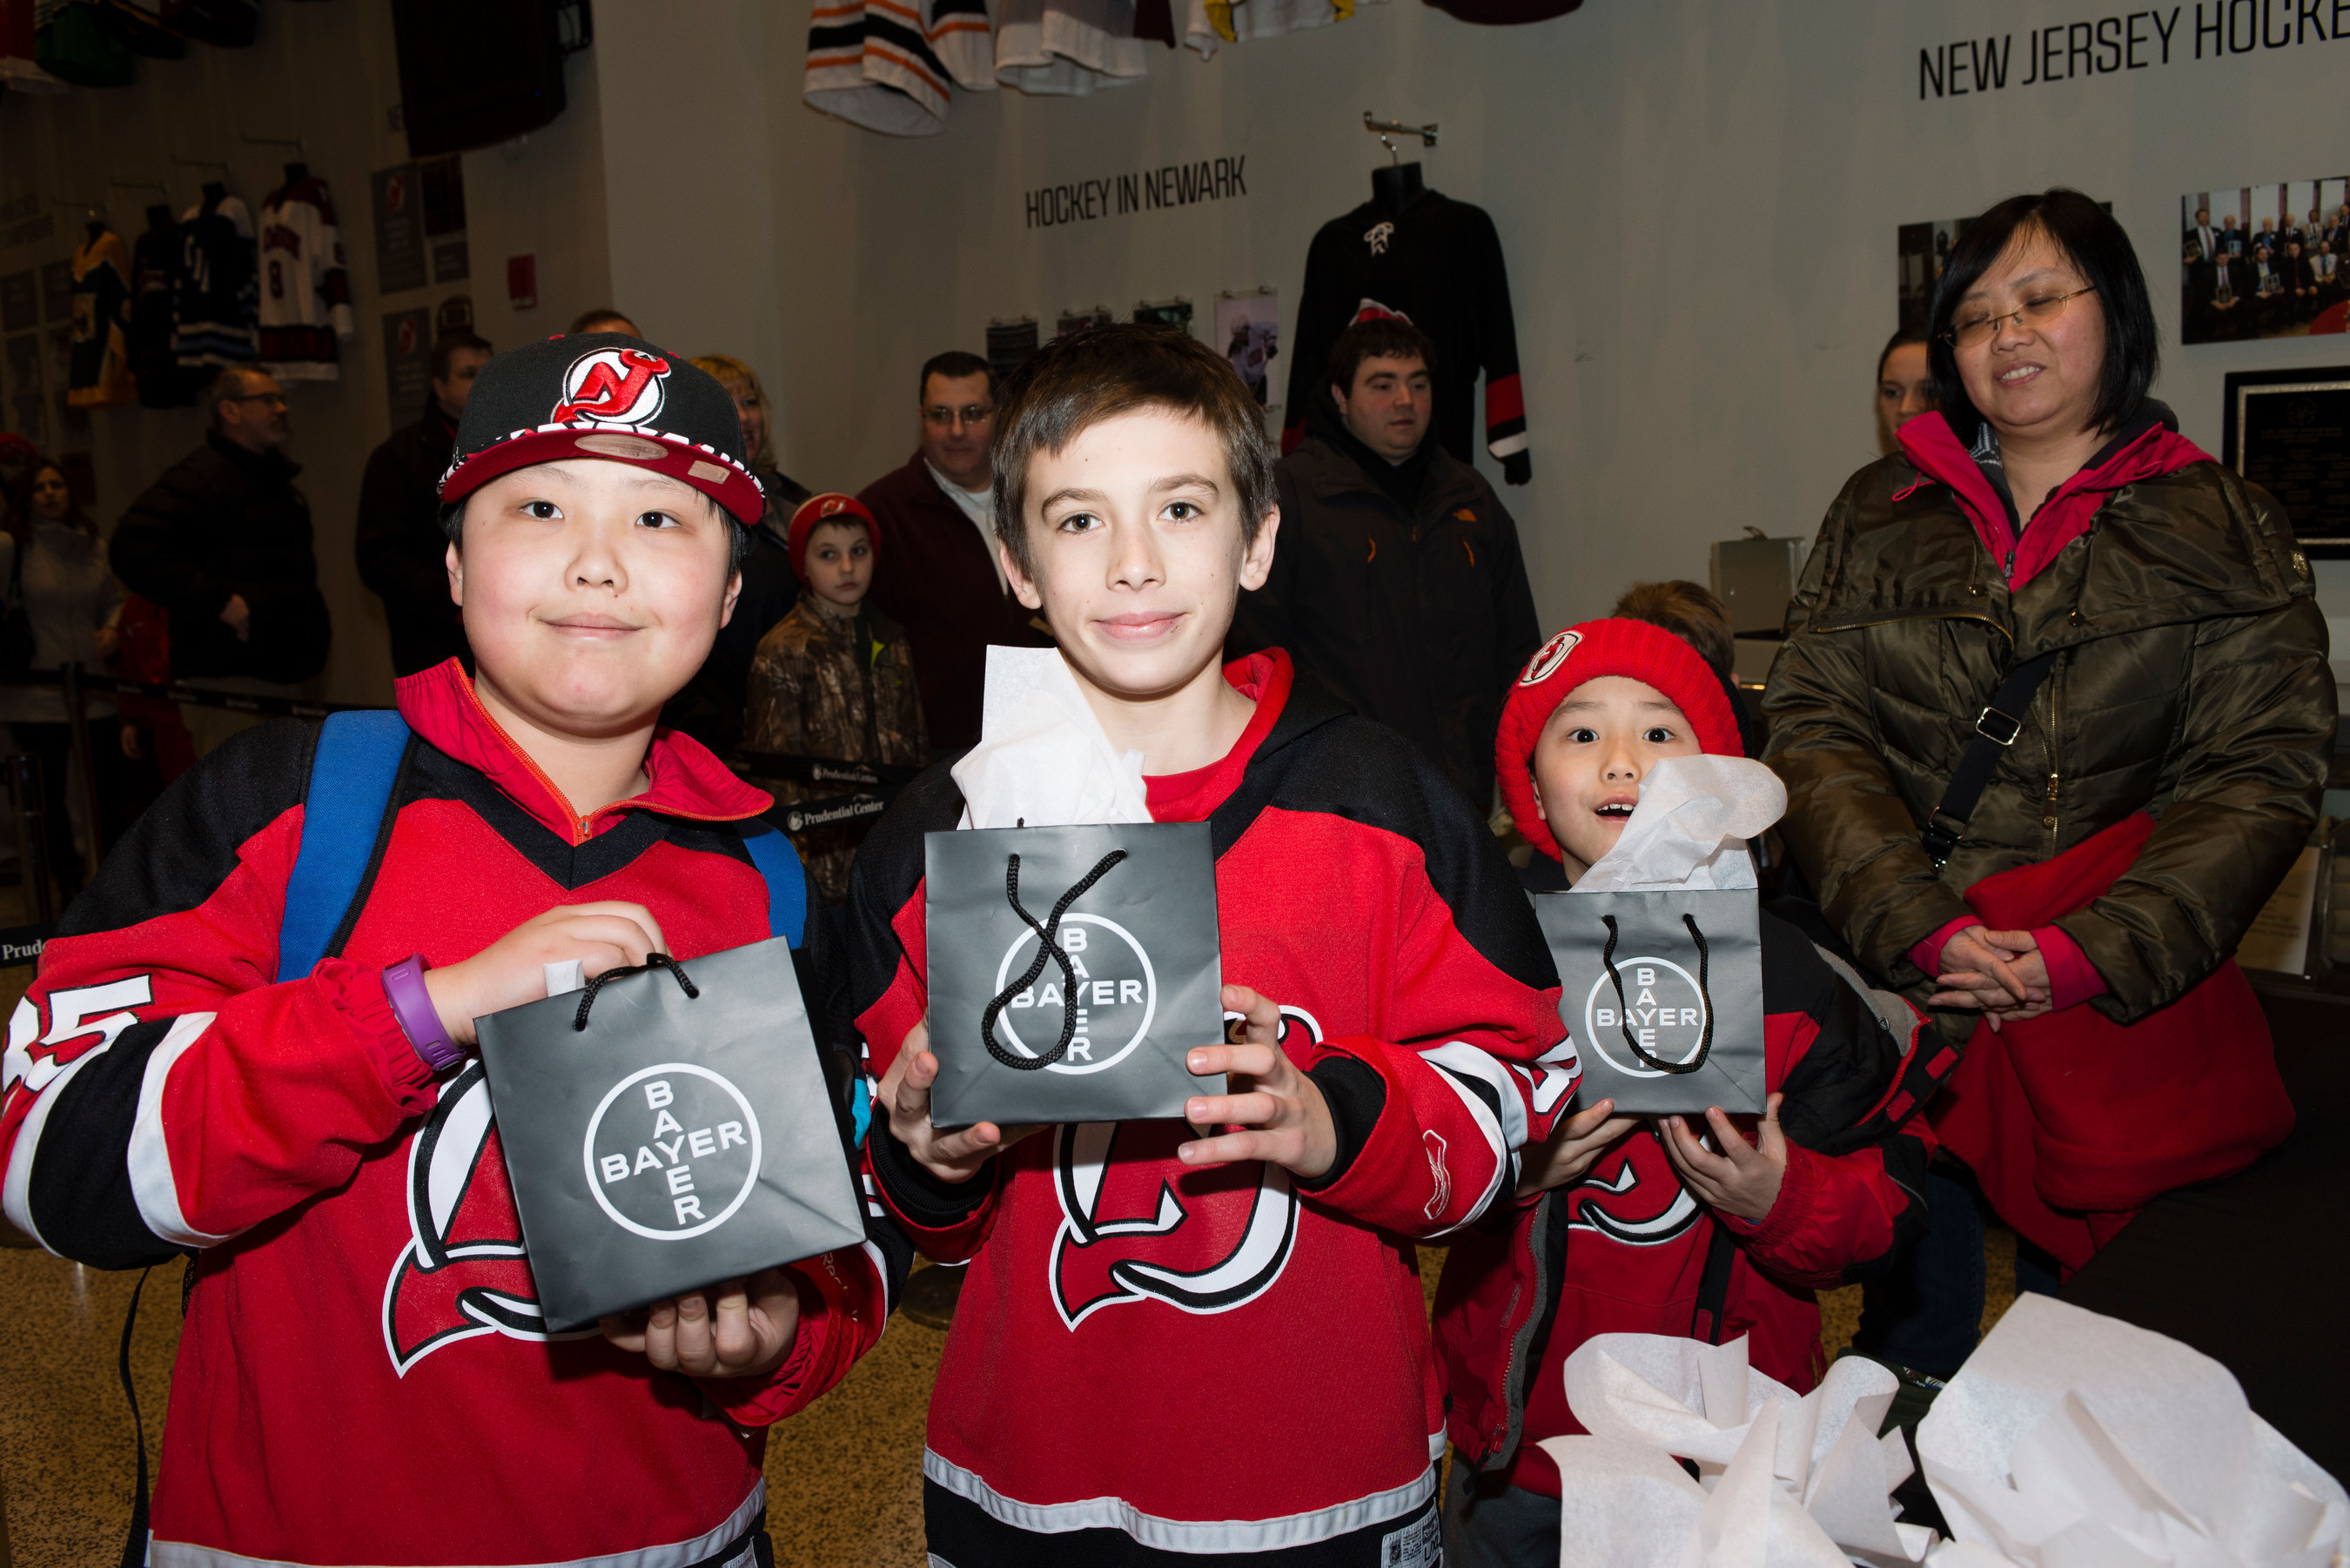 Young Devils fans receive souvenirs at Bayer Fights Cancer Night on Feb. 6, 2015.